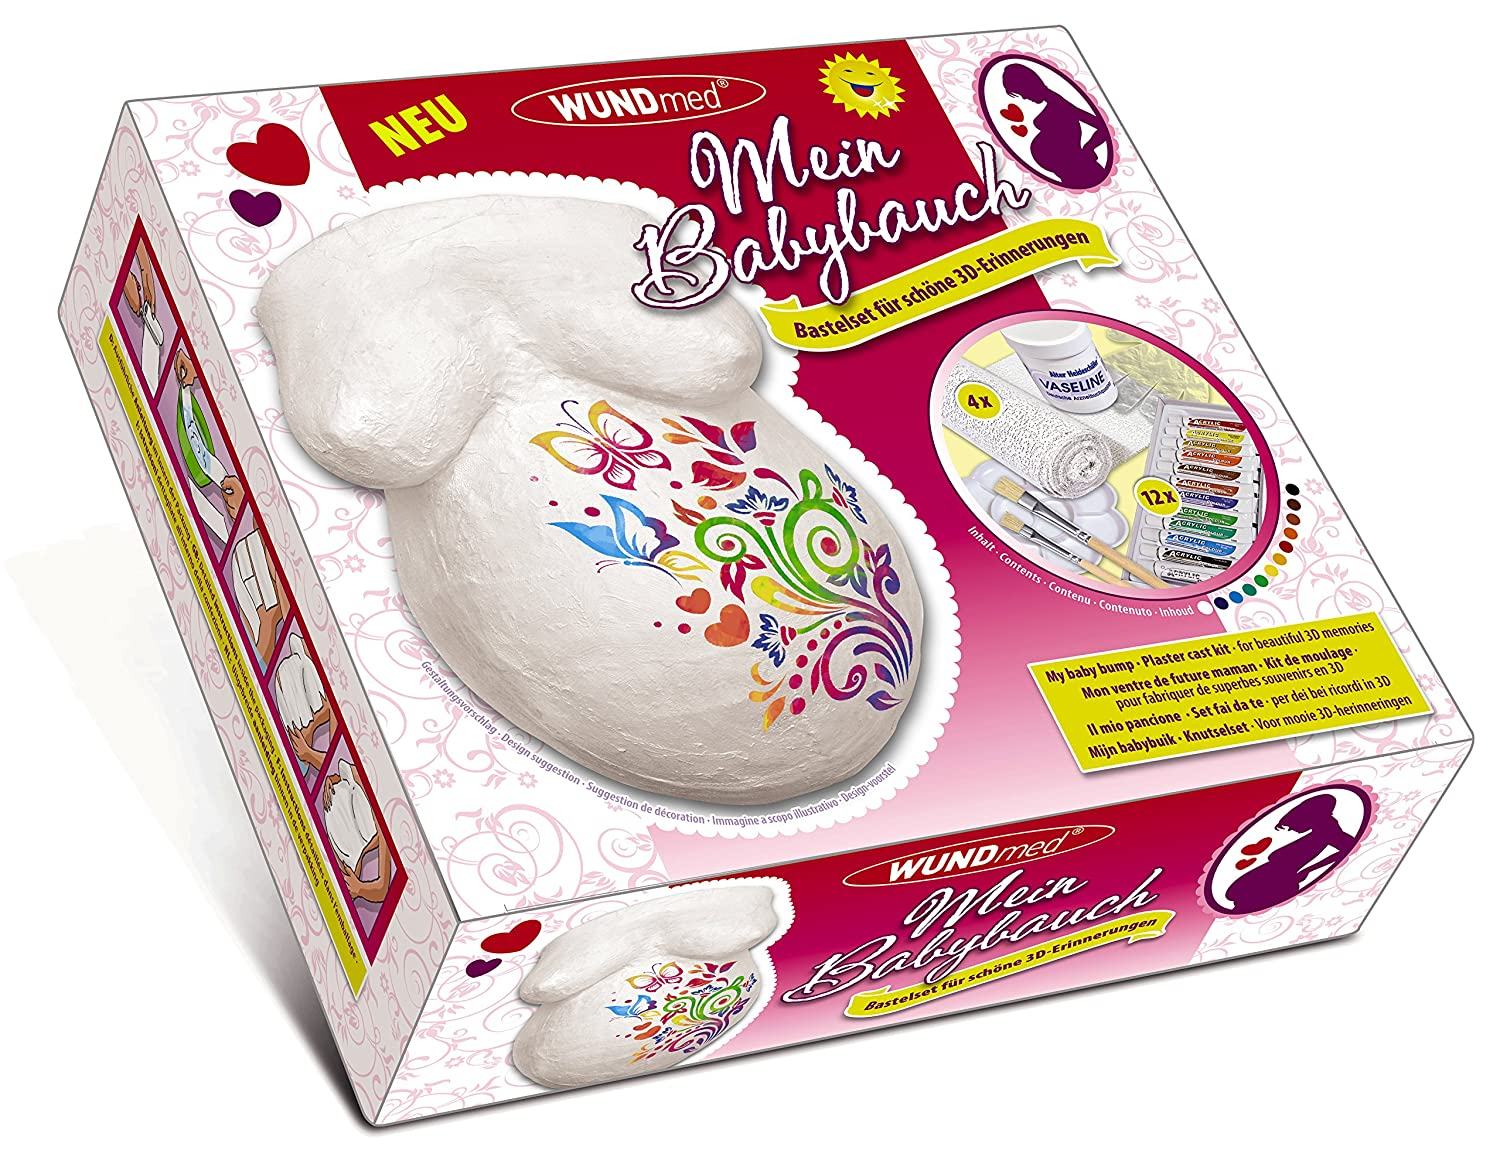 Wundmed - My Baby Belly - Plaster Craft kit for Beautiful 3D Memories